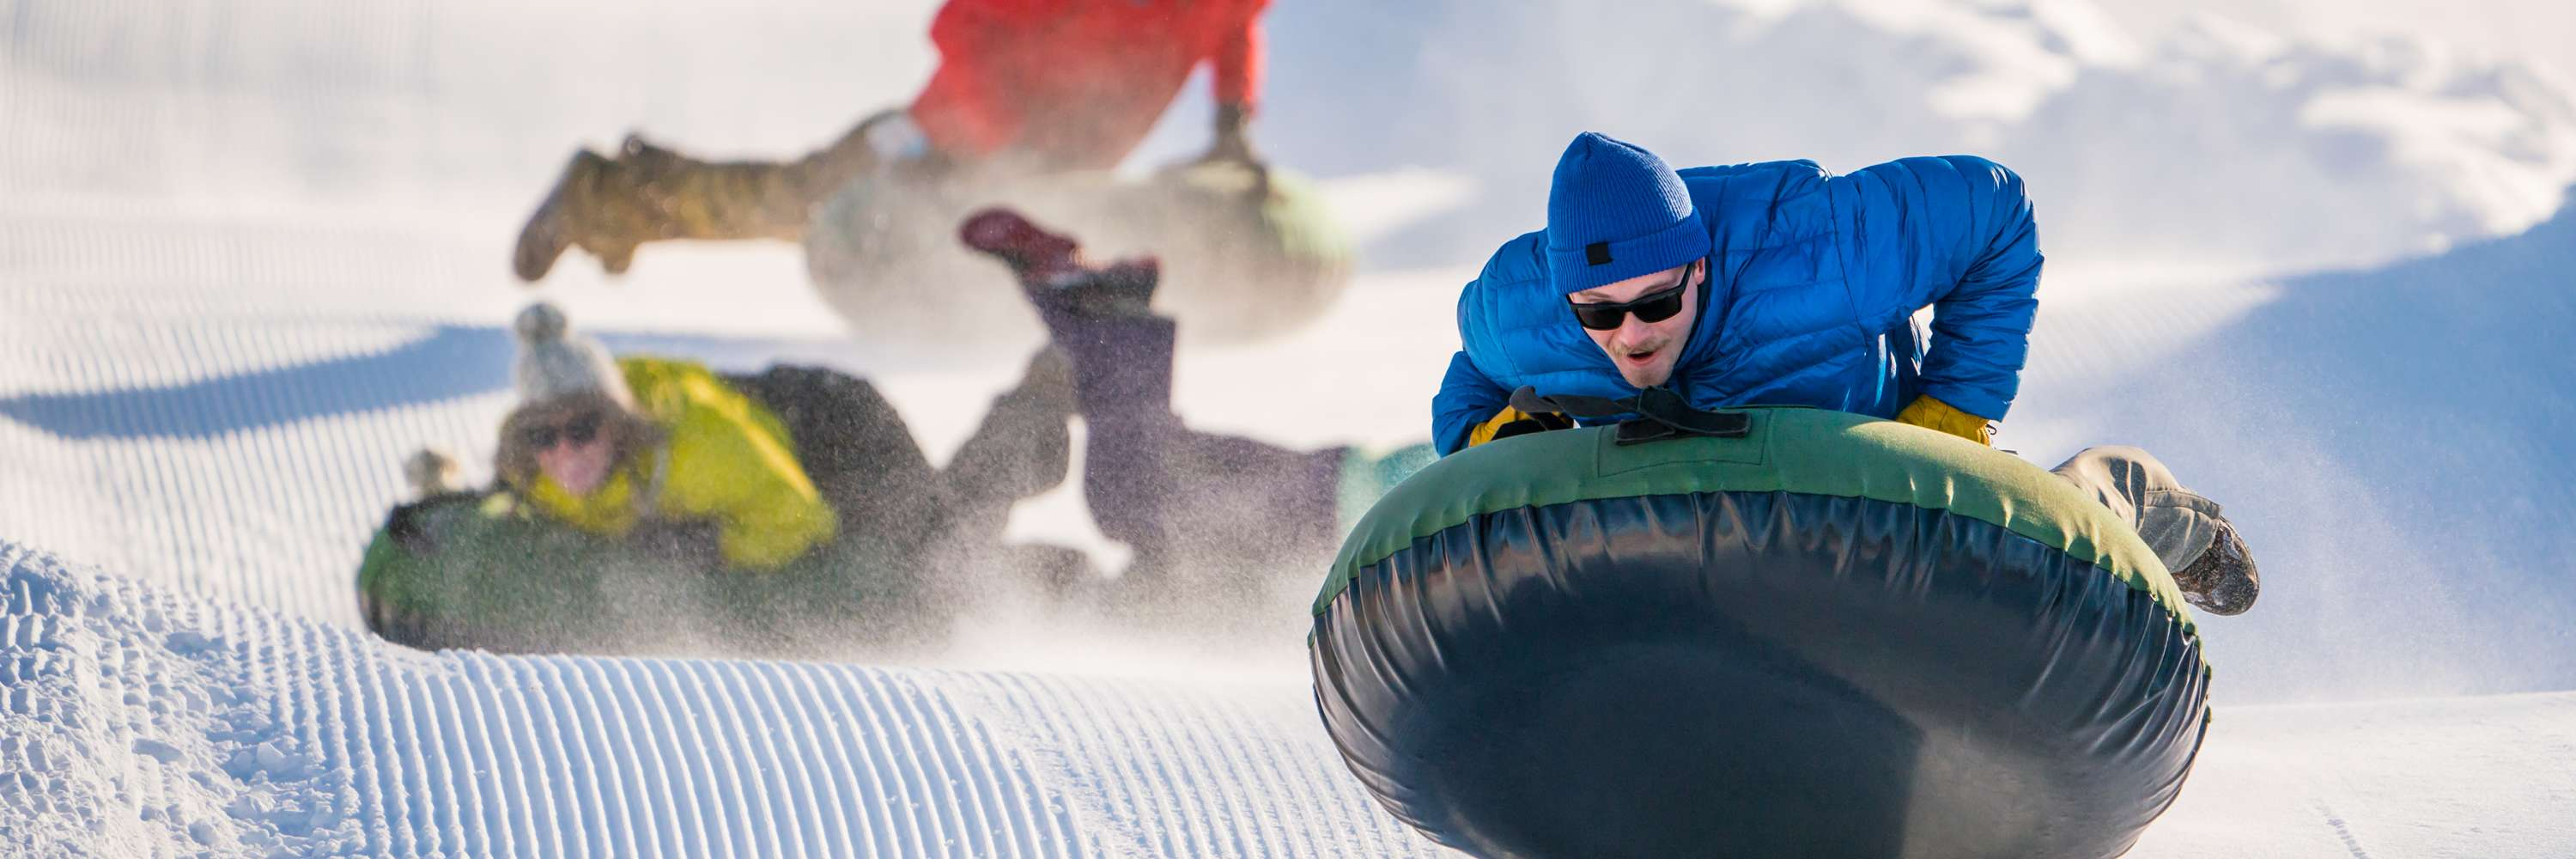 Pure Michigan: Tubing & Sledding